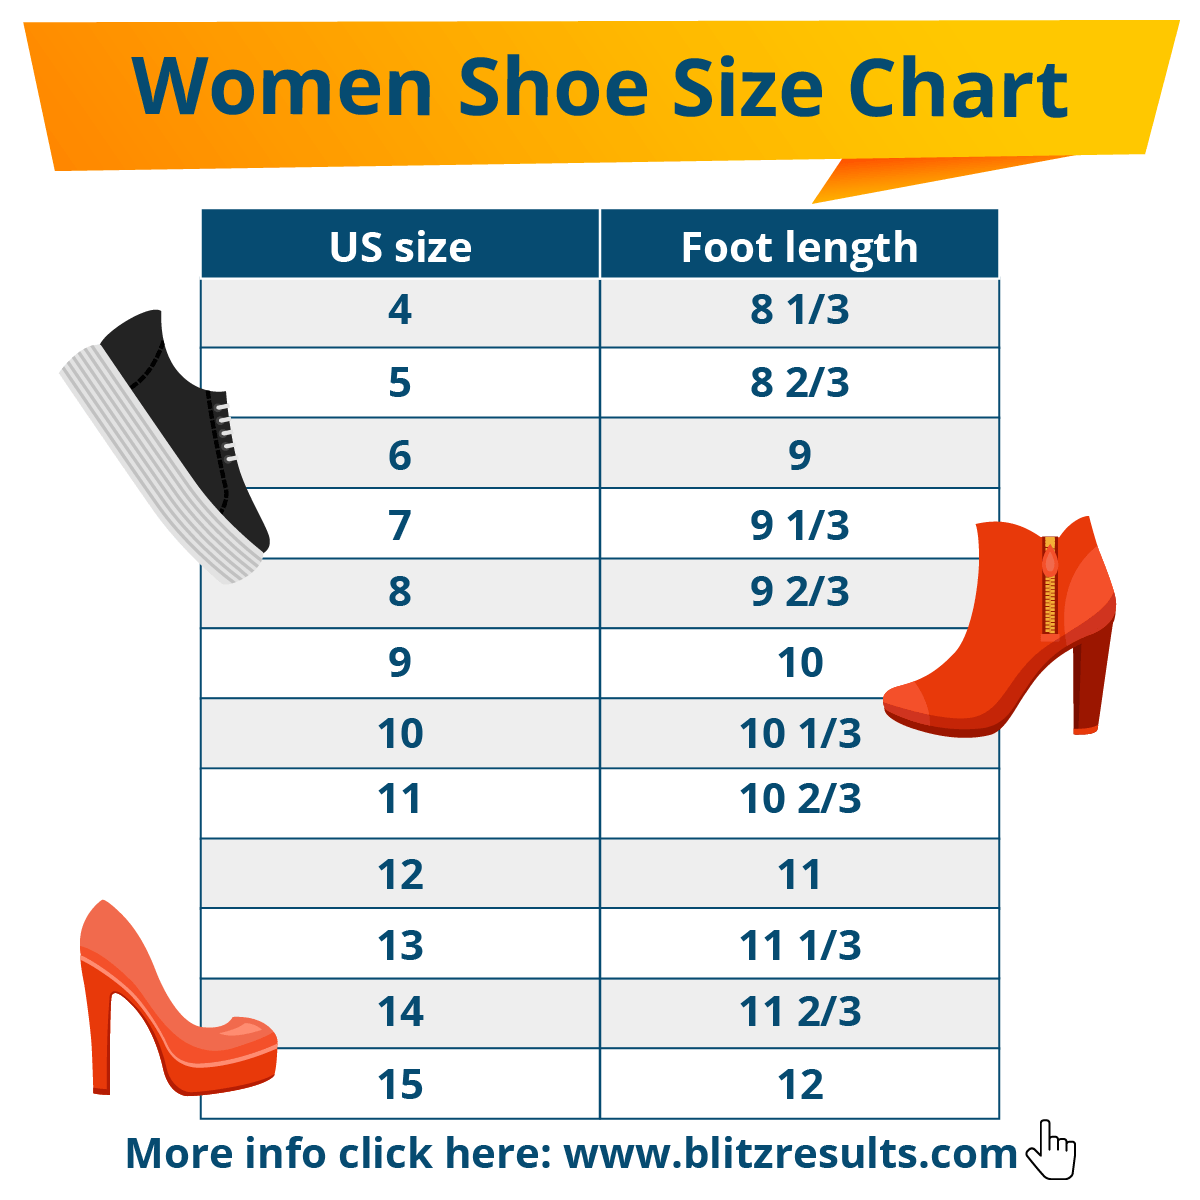 ᐅ Shoe Sizes Shoe Size Charts, Men \u0026 Women, How to Measure